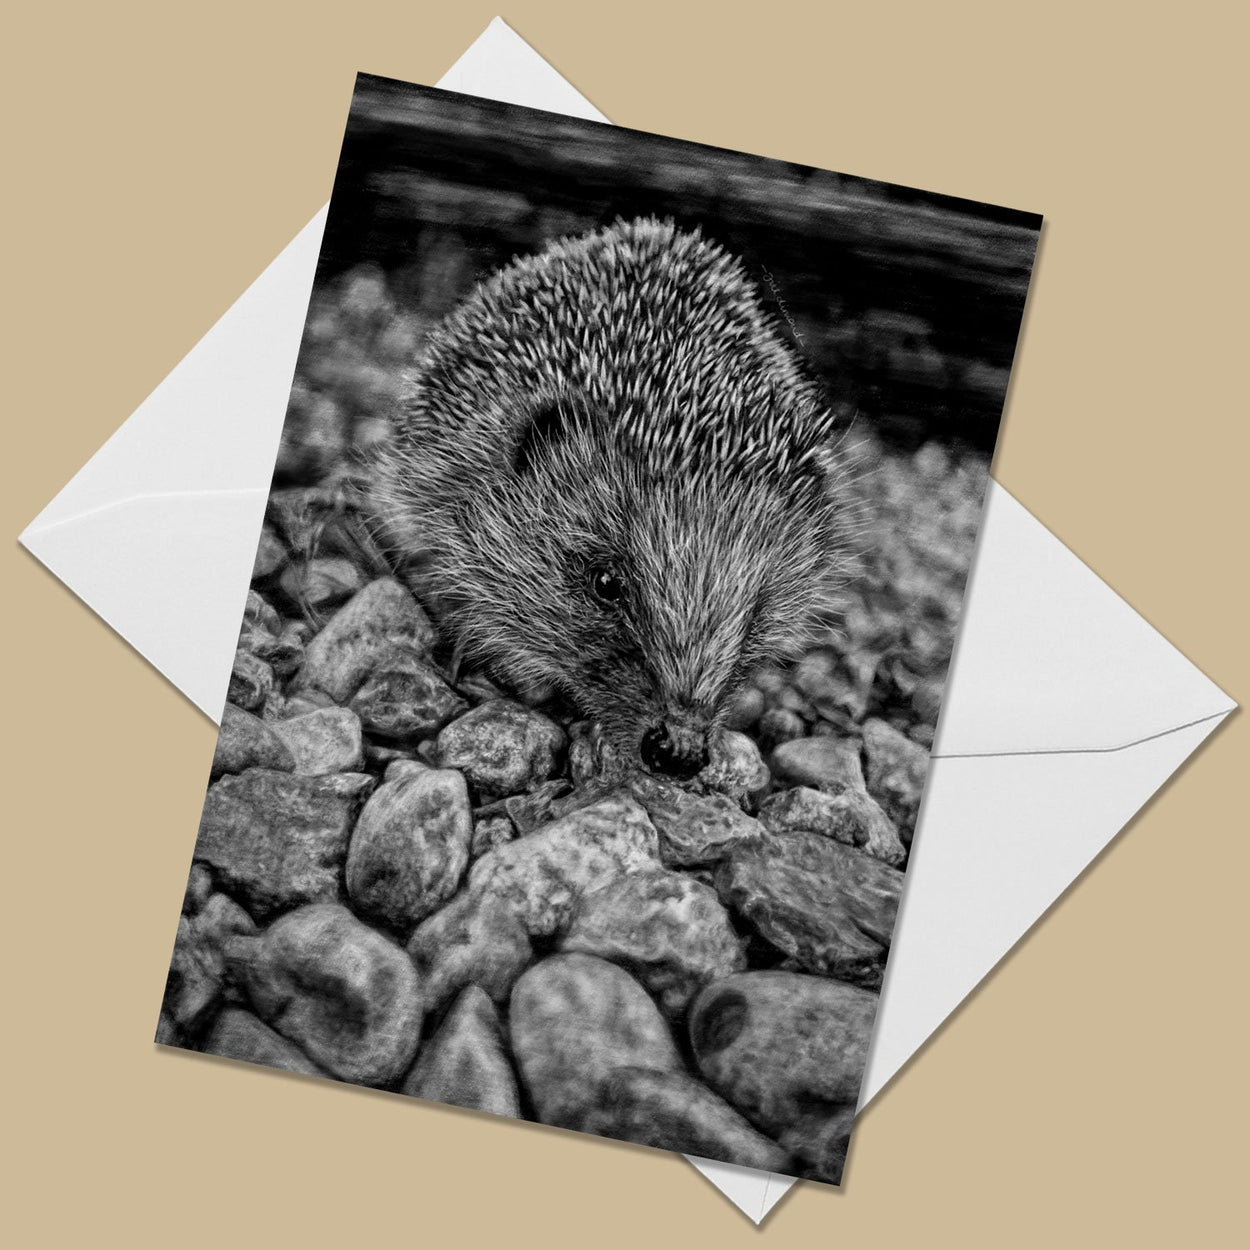 Hedgehog Greeting Card - The Thriving Wild